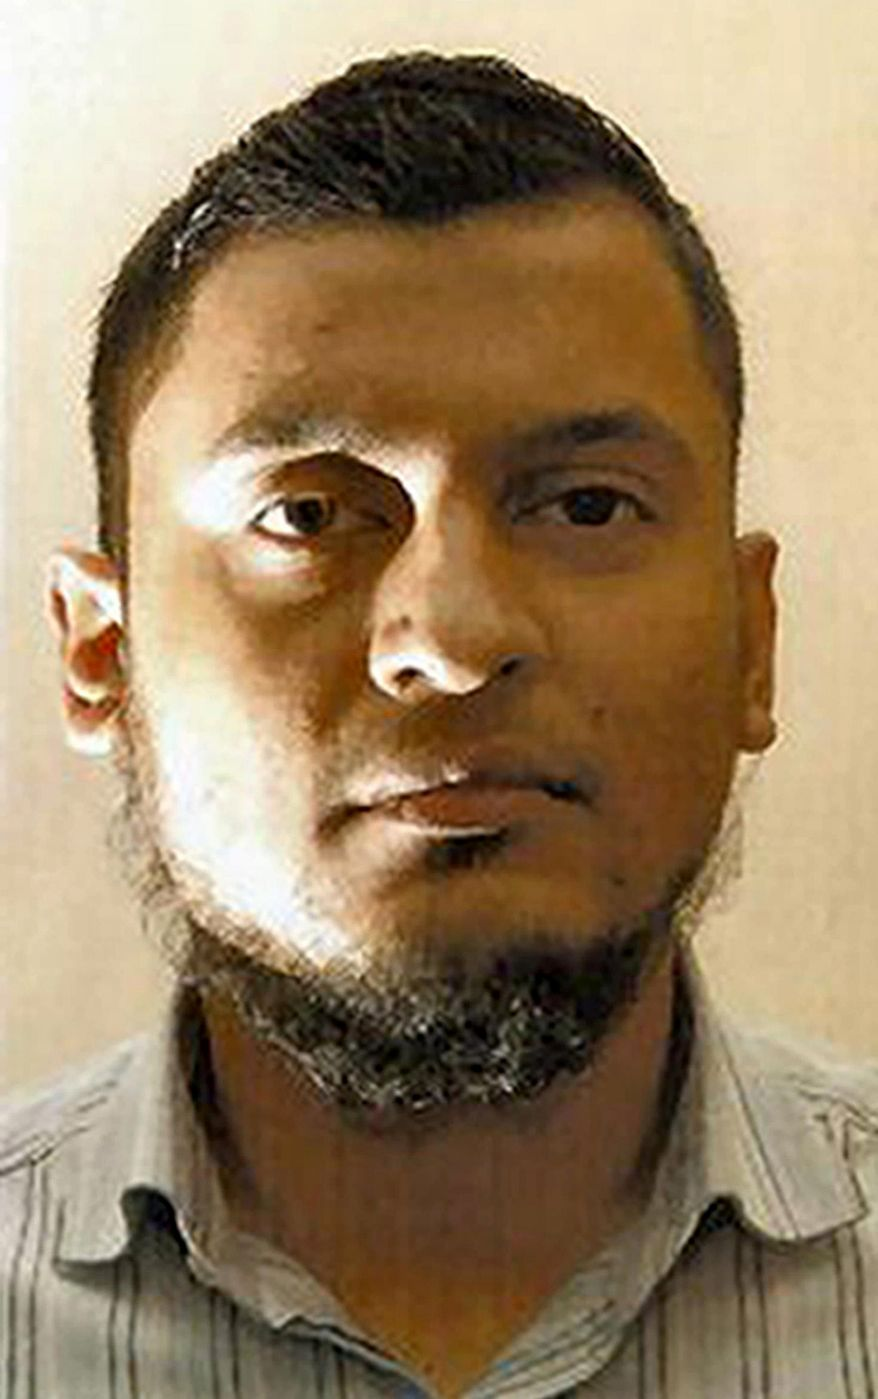 Rajib Karim was found guilty on Monday, Feb. 28, 2011, at Woolwich Crown Court in London of plotting to blow up a plane while working as a computer specialist with British Airways. (AP Photo/Metropolitan Police, HO/PA Wire)